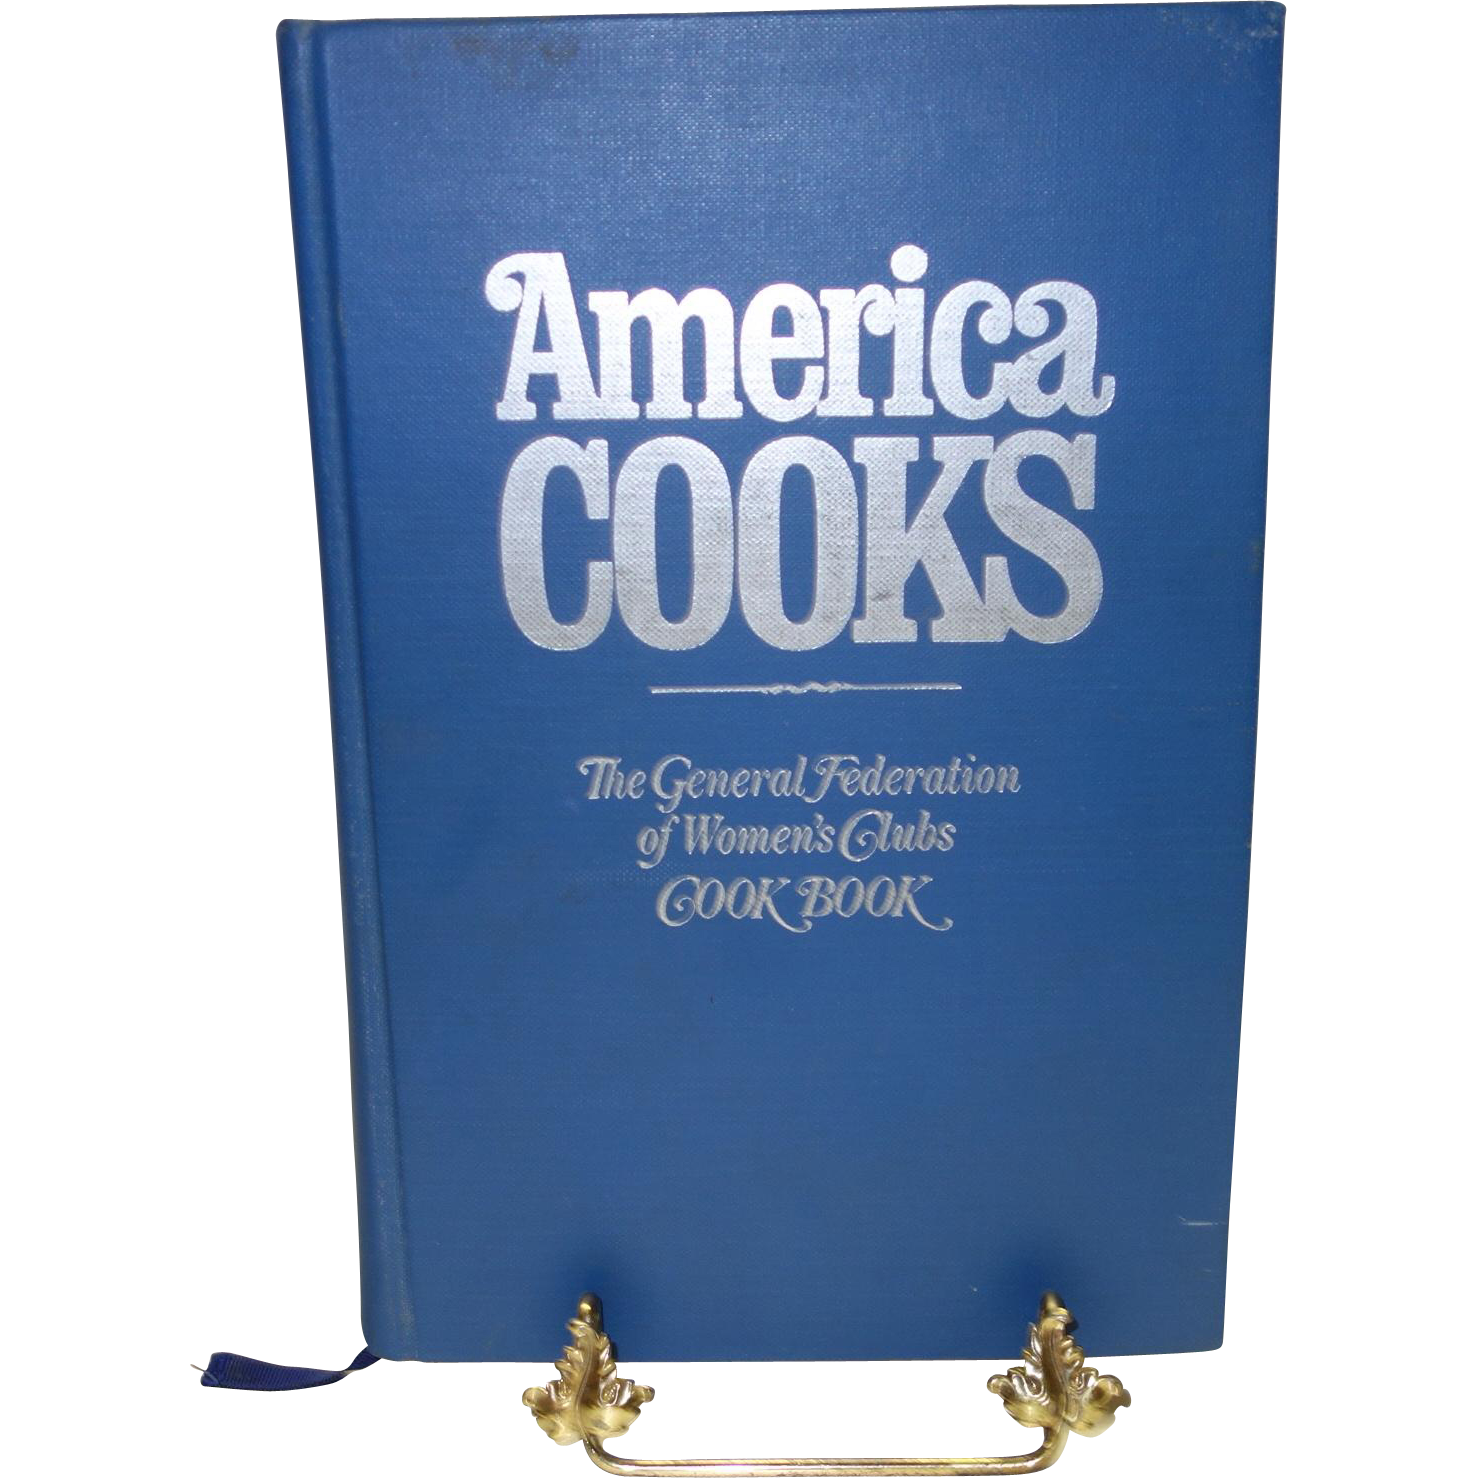 America Cooks: The General Federation of Women's Clubs Cook Book